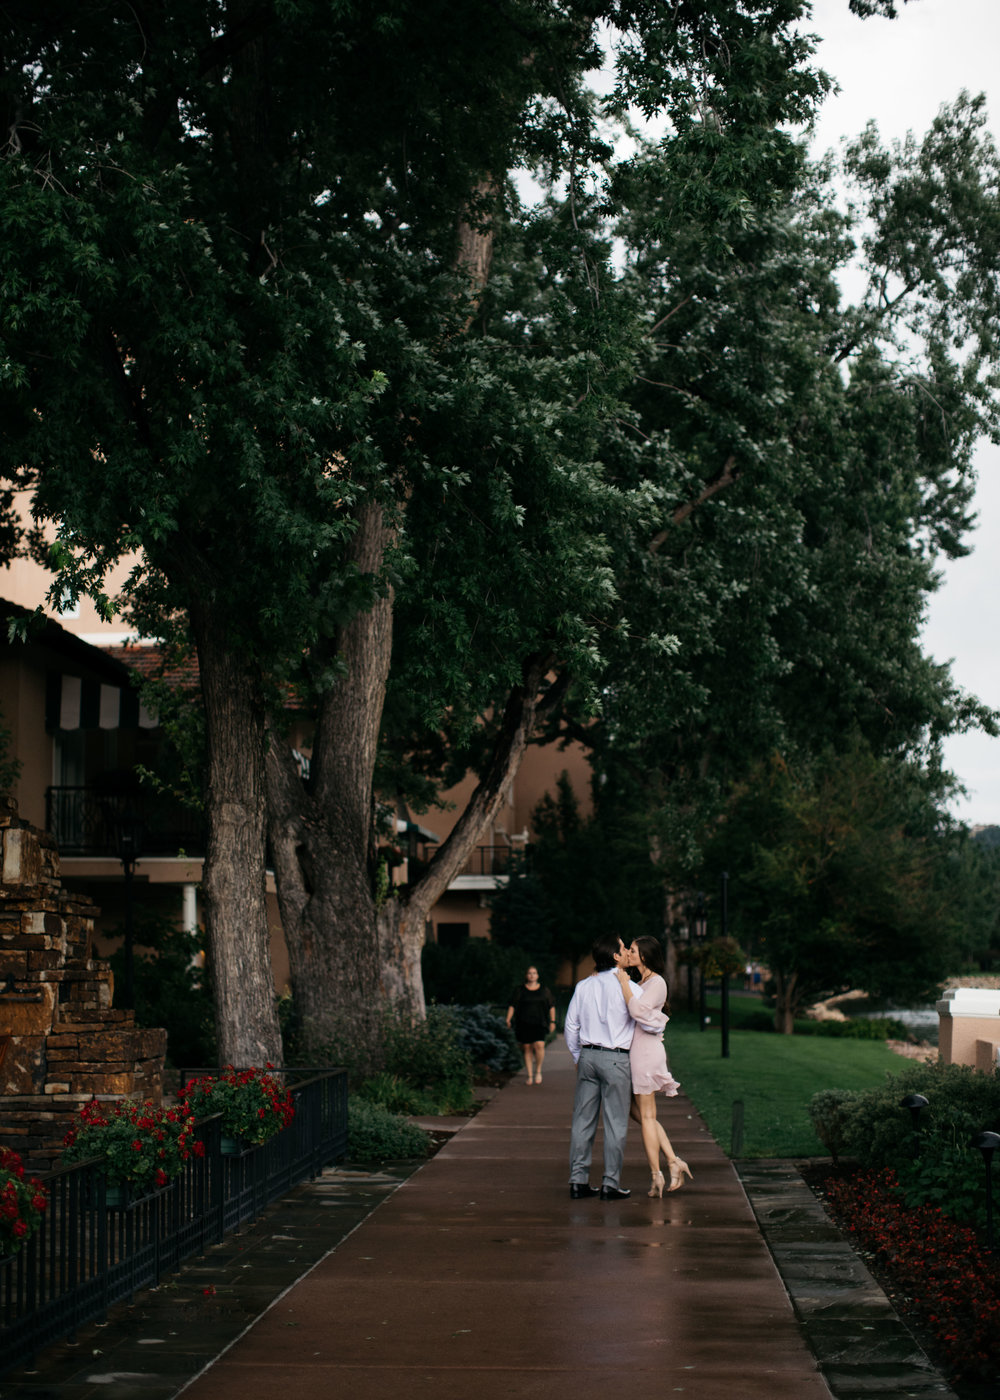 broadmoor-engagement-photography-43.jpg